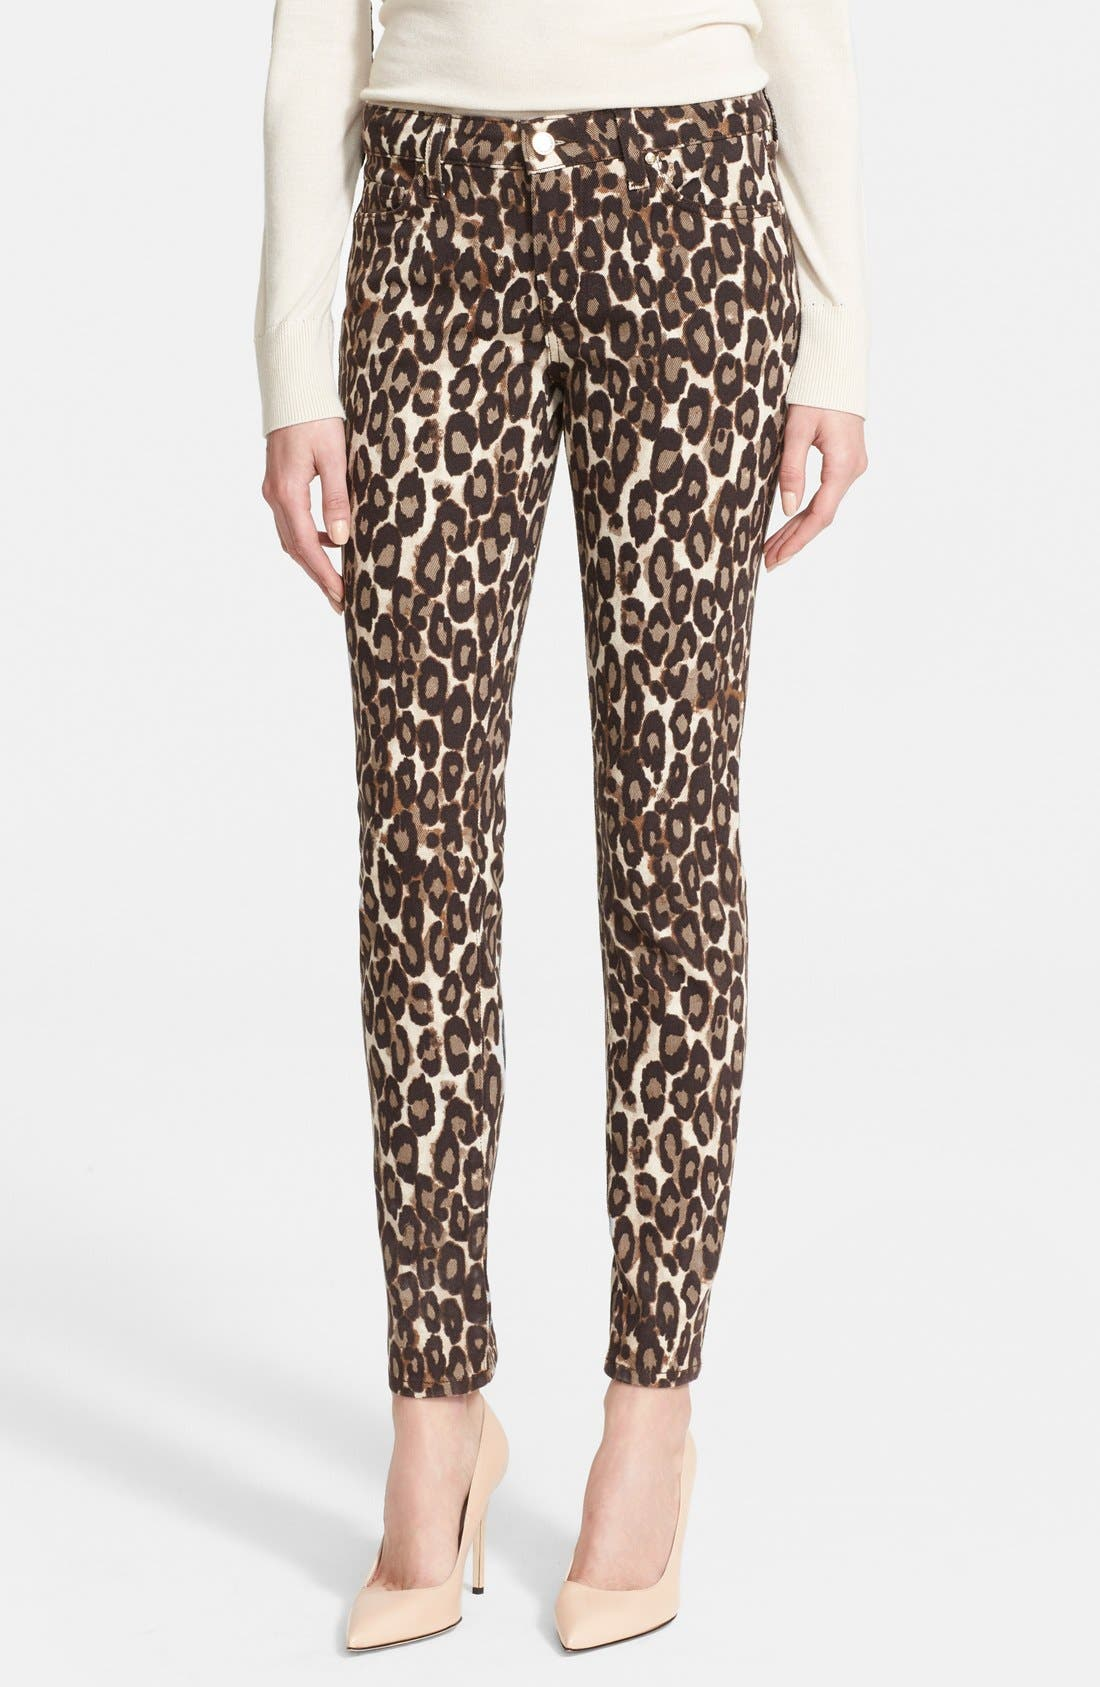 'broome street' leopard print jeans,                             Main thumbnail 1, color,                             200